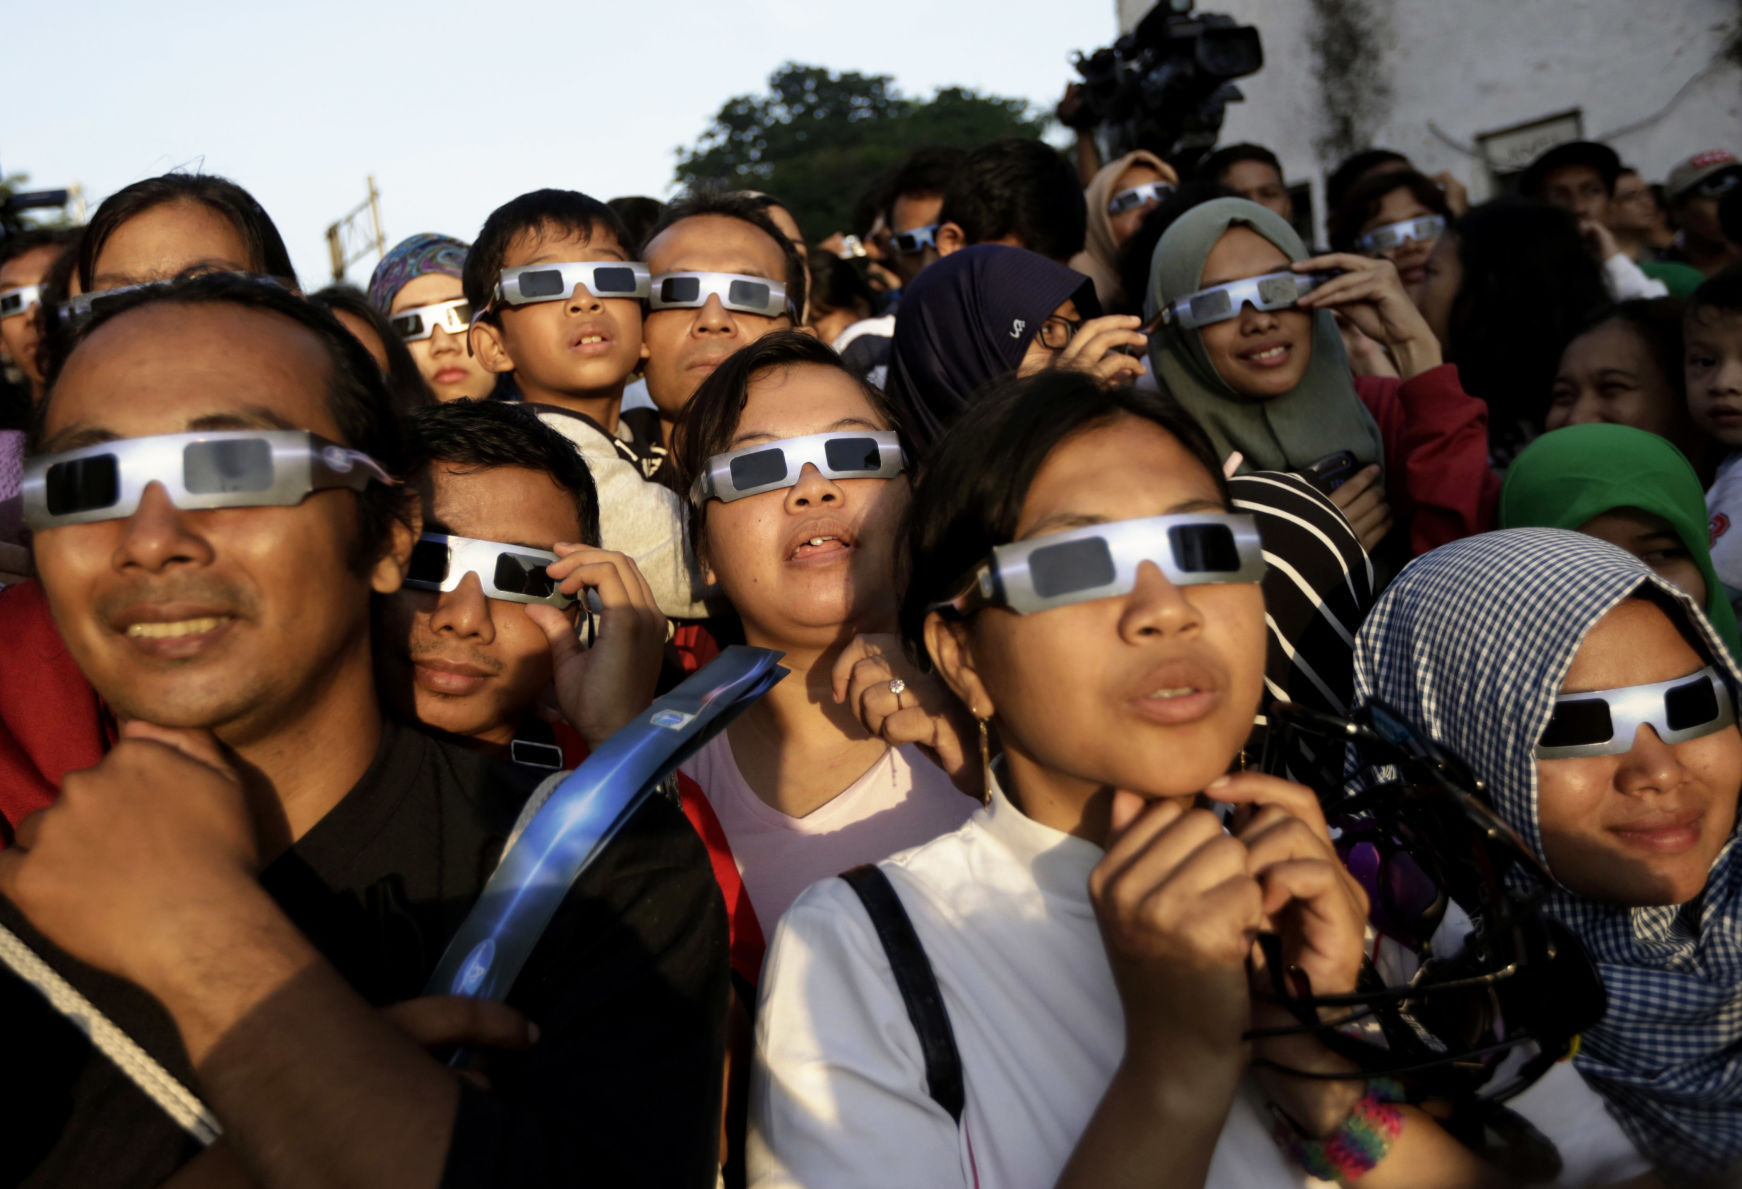 Watch Out for Fake Eclipse Glasses